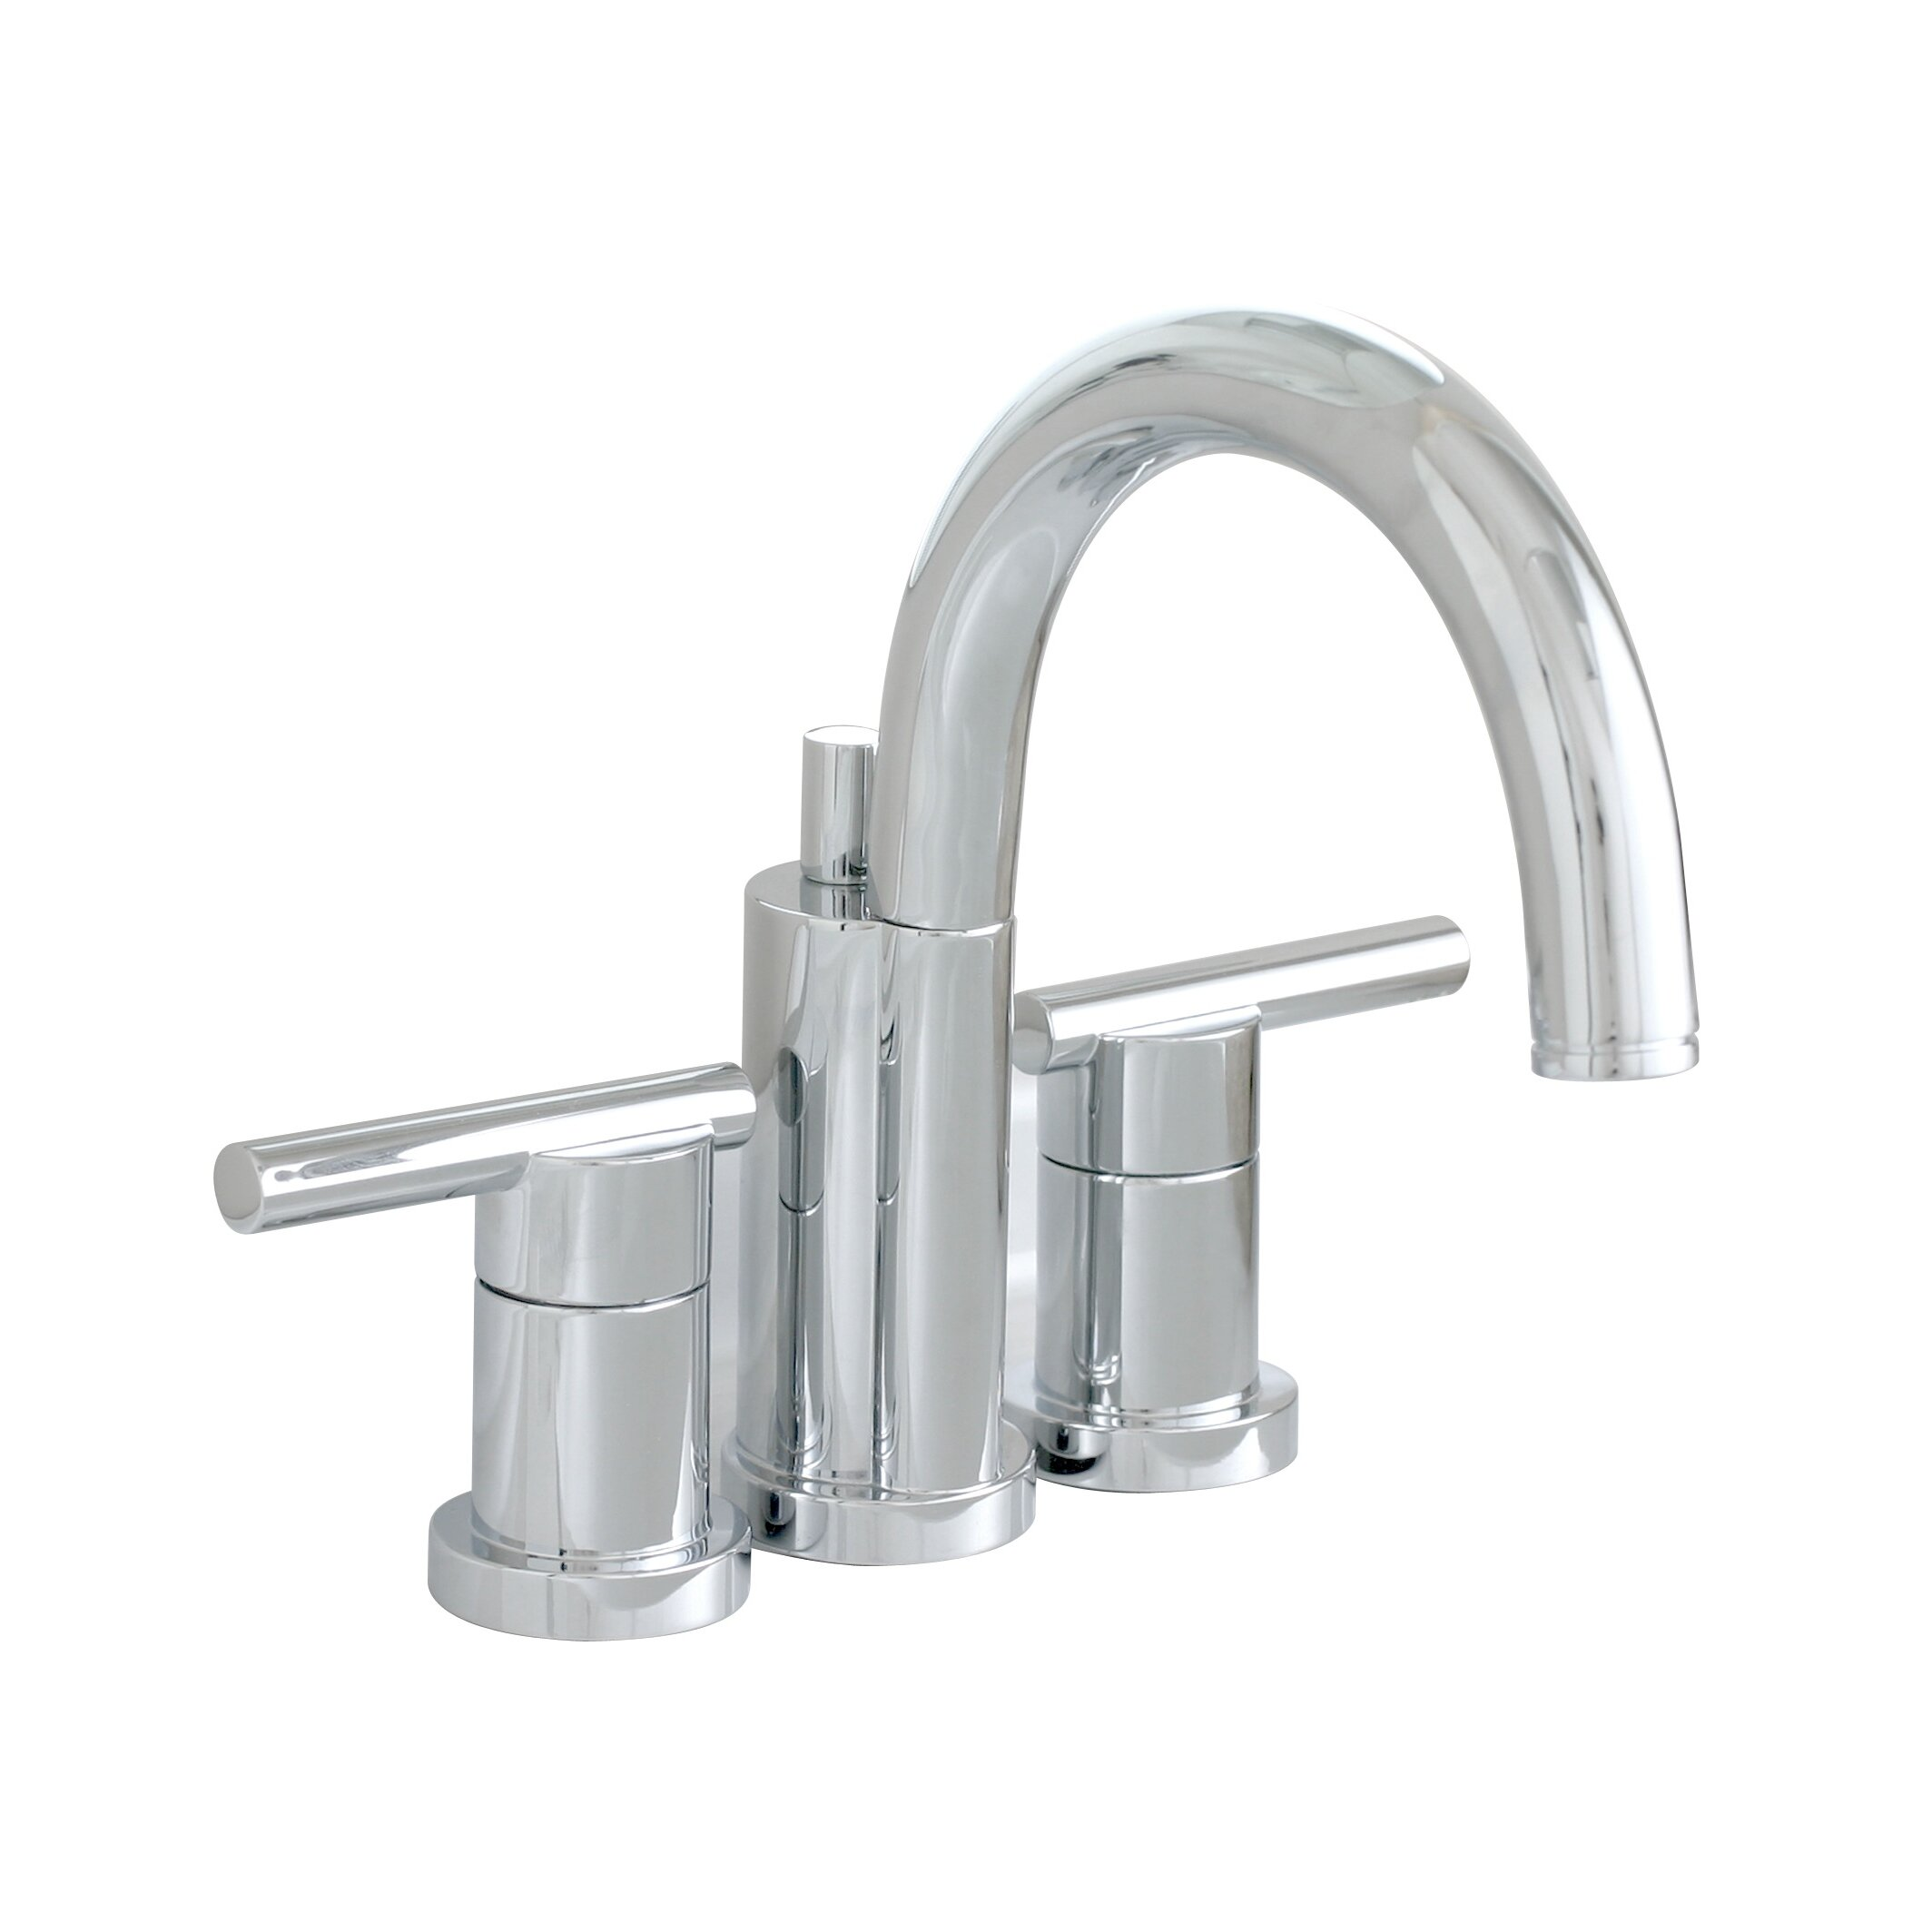 Bathroom Faucet Premier Faucet Essen Widespread Bathroom Faucet With Double